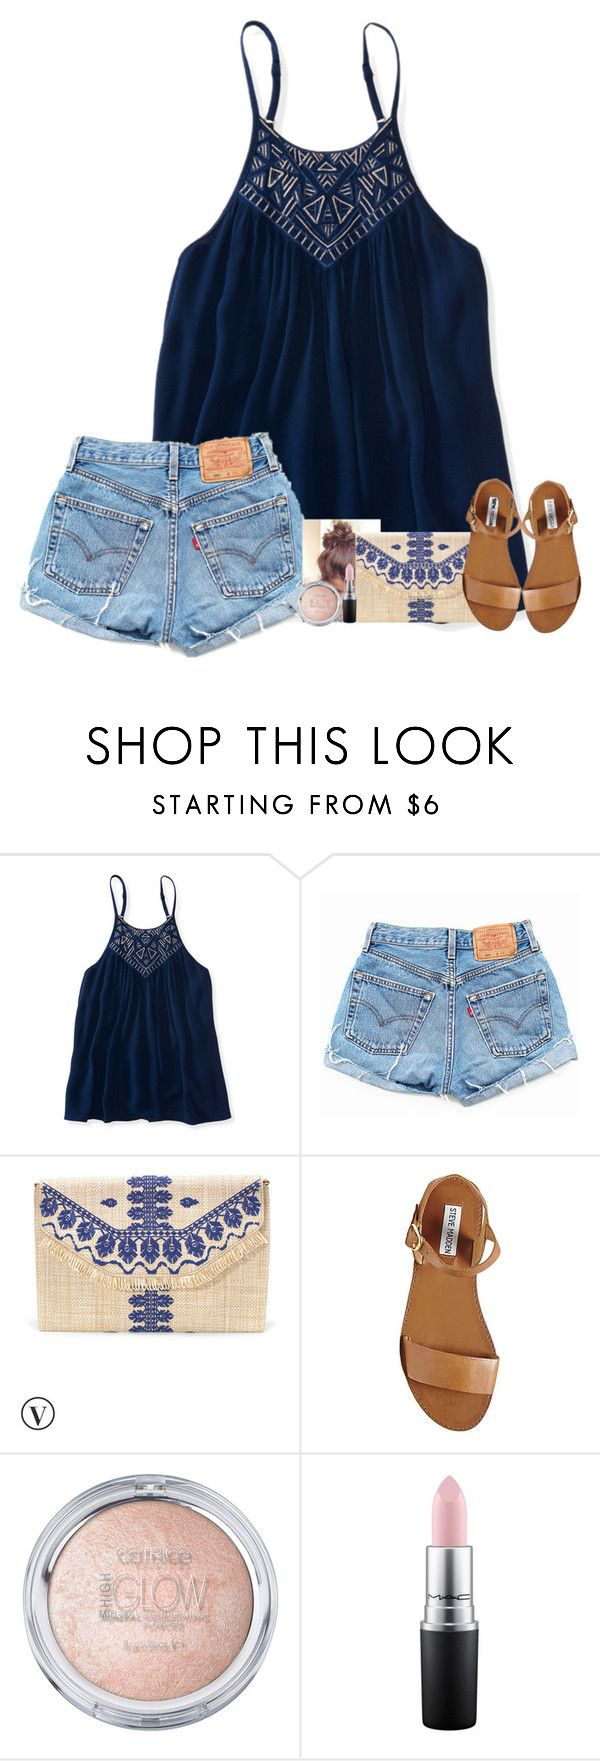 """Home from camp. Didn't want to leave "" by fashionpassion2002 ❤ liked on Polyvore featuring Aéropostale, Levi's, Stella & Dot, Steve Madden and MAC Cosmetics"